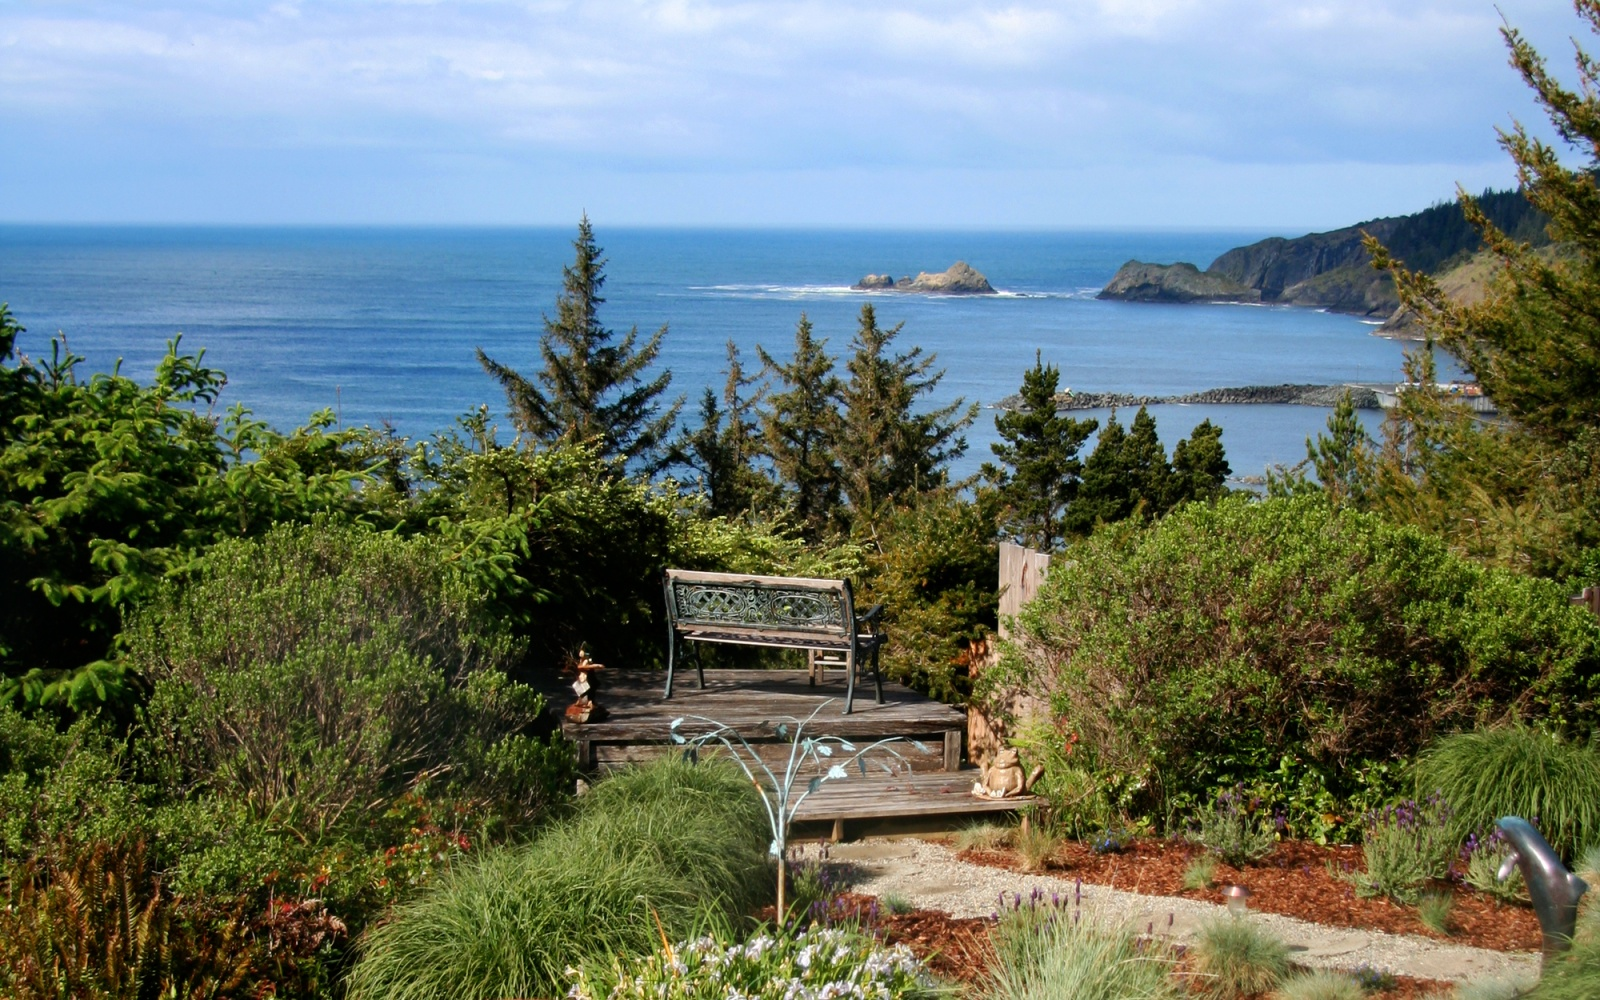 WildSpring, Port Orford, OR